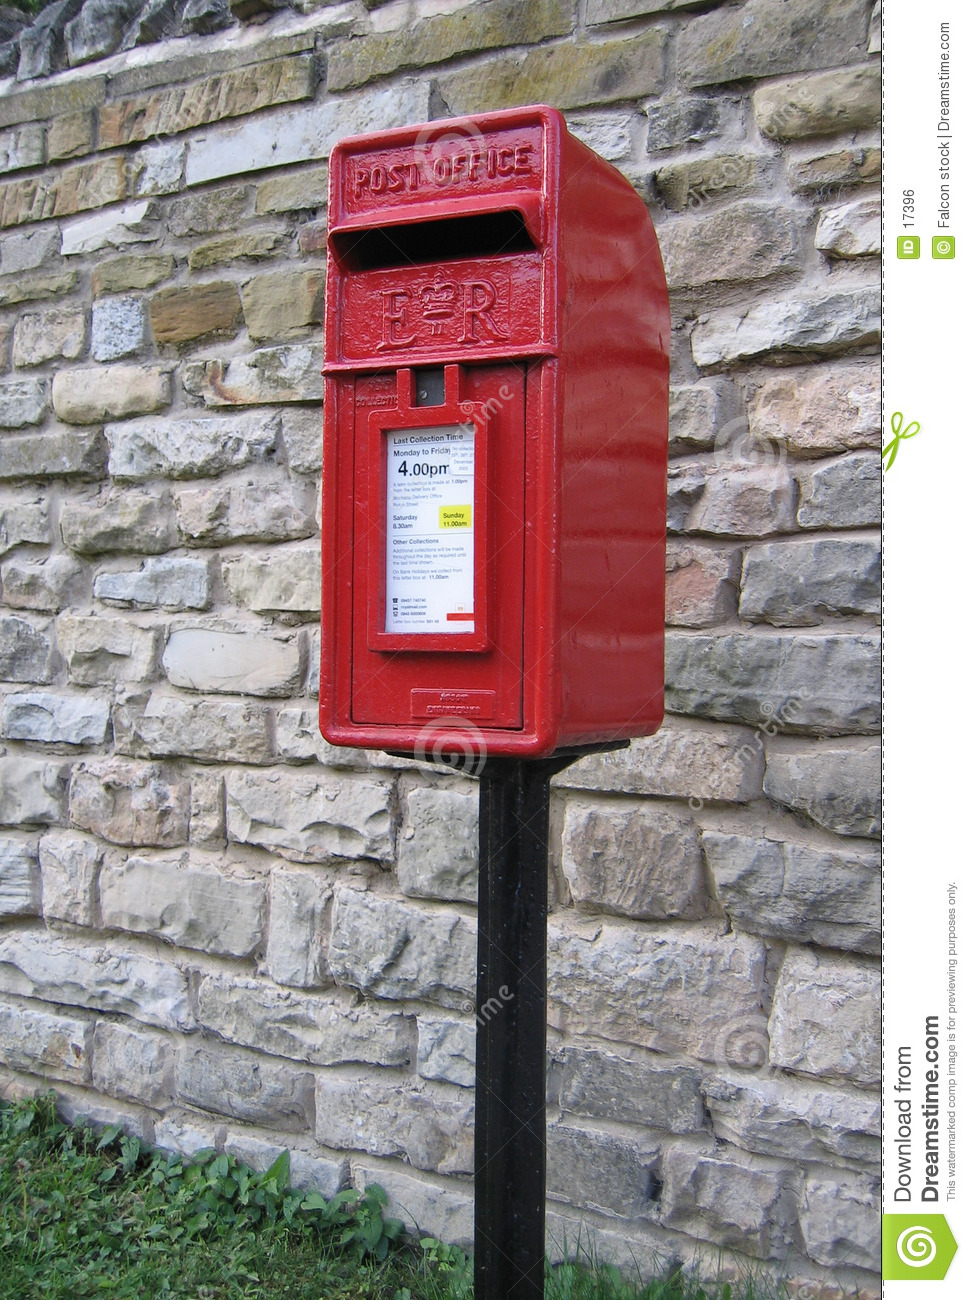 Ljus postbox röd uk